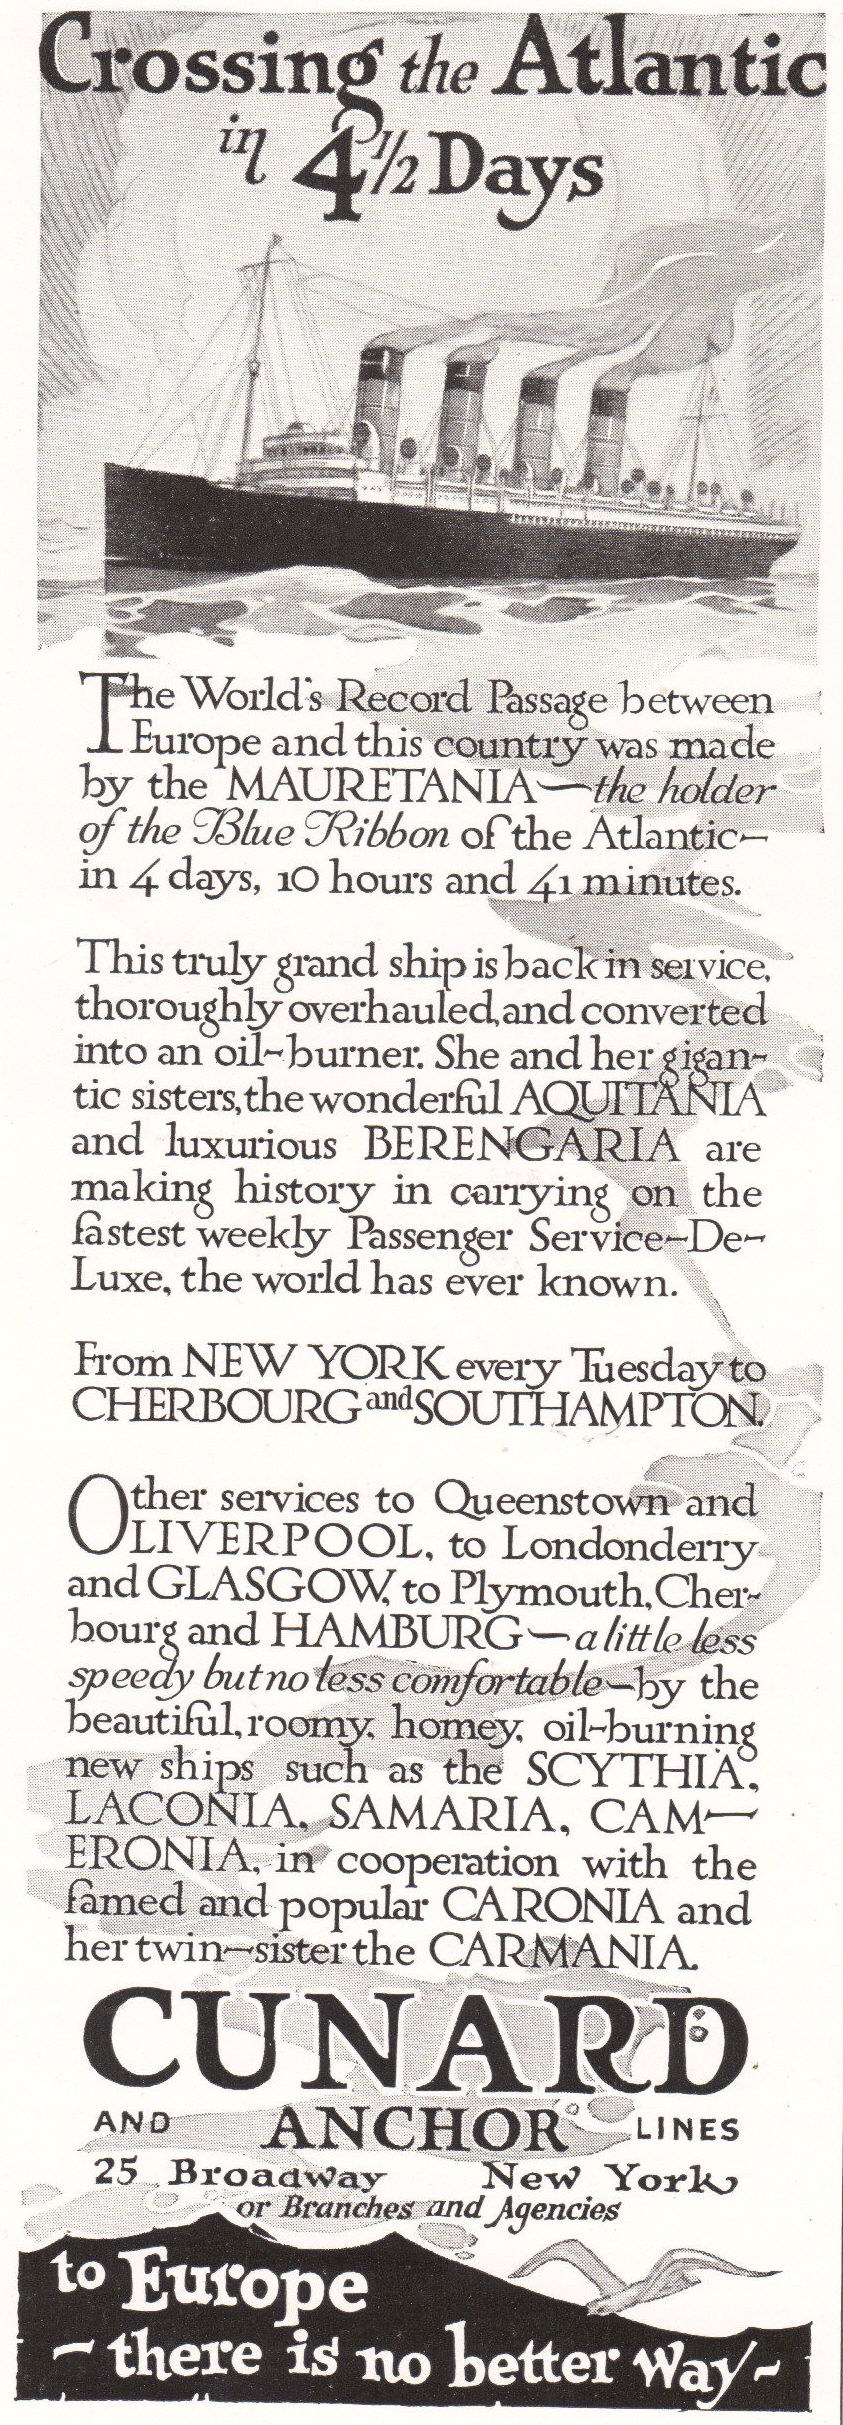 Cunard and Anchor Atlantic Lines - Antique advertisement from 1922.